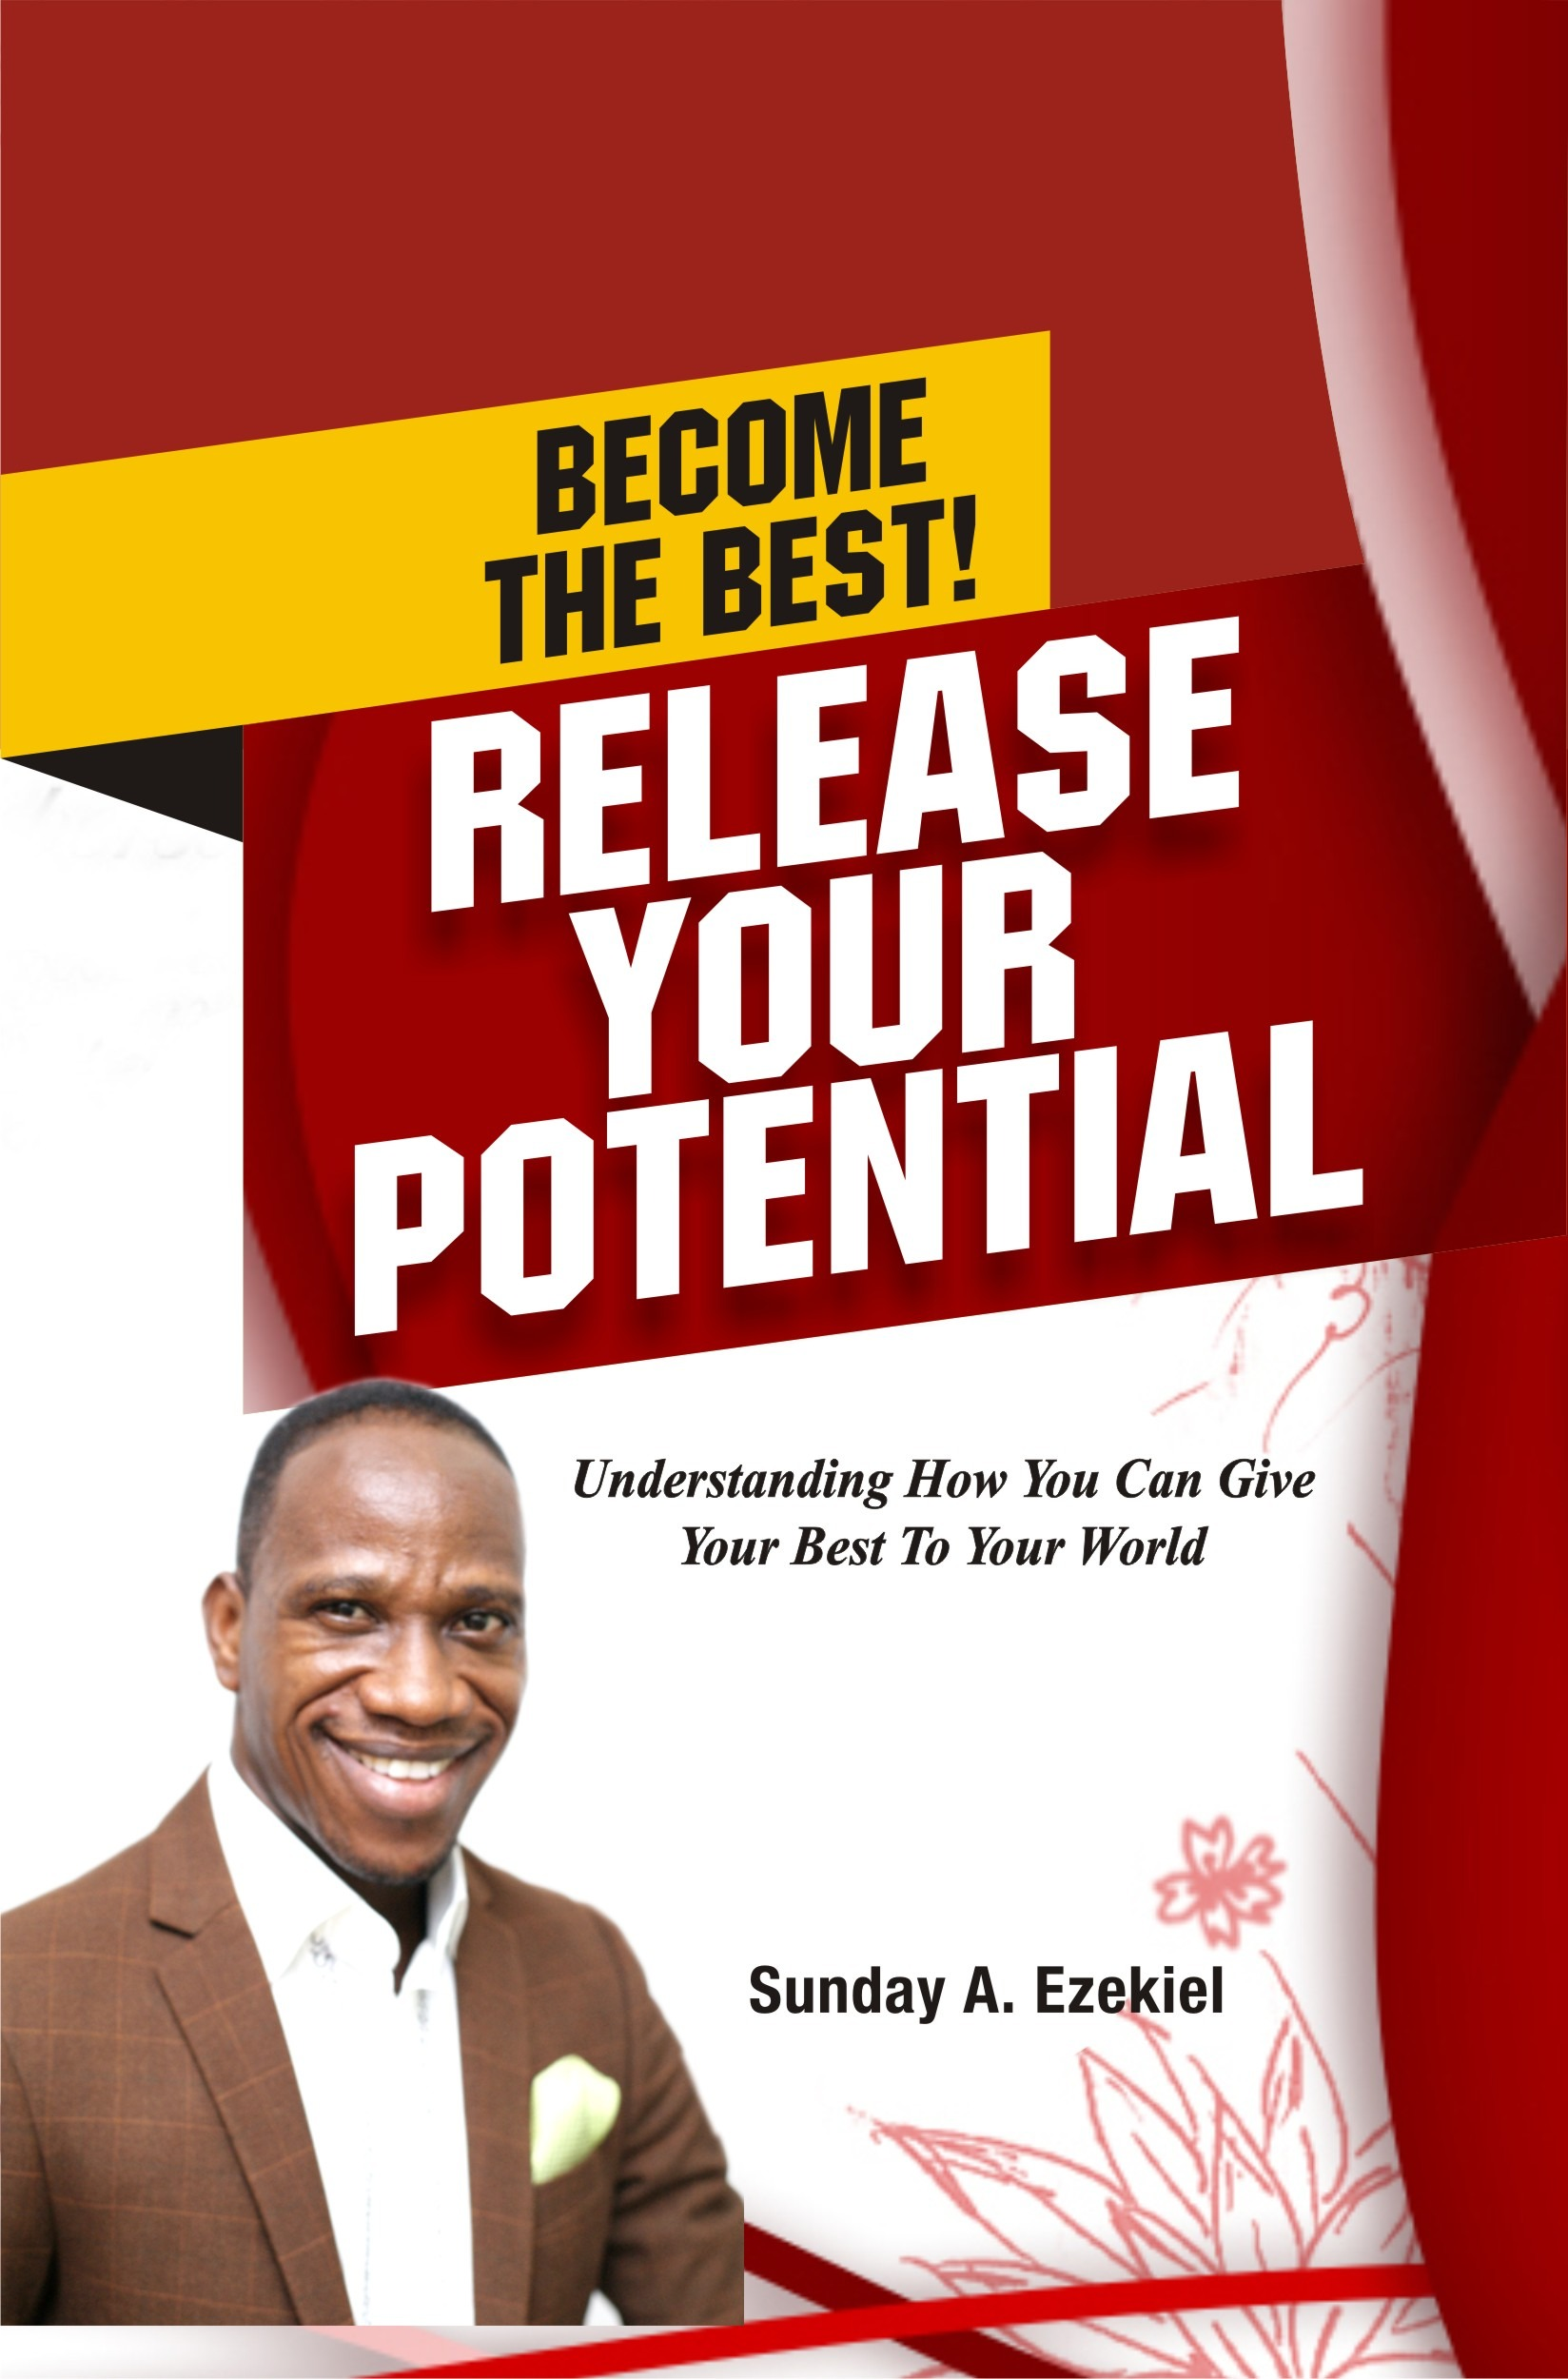 Become The Best! Release Your Potential